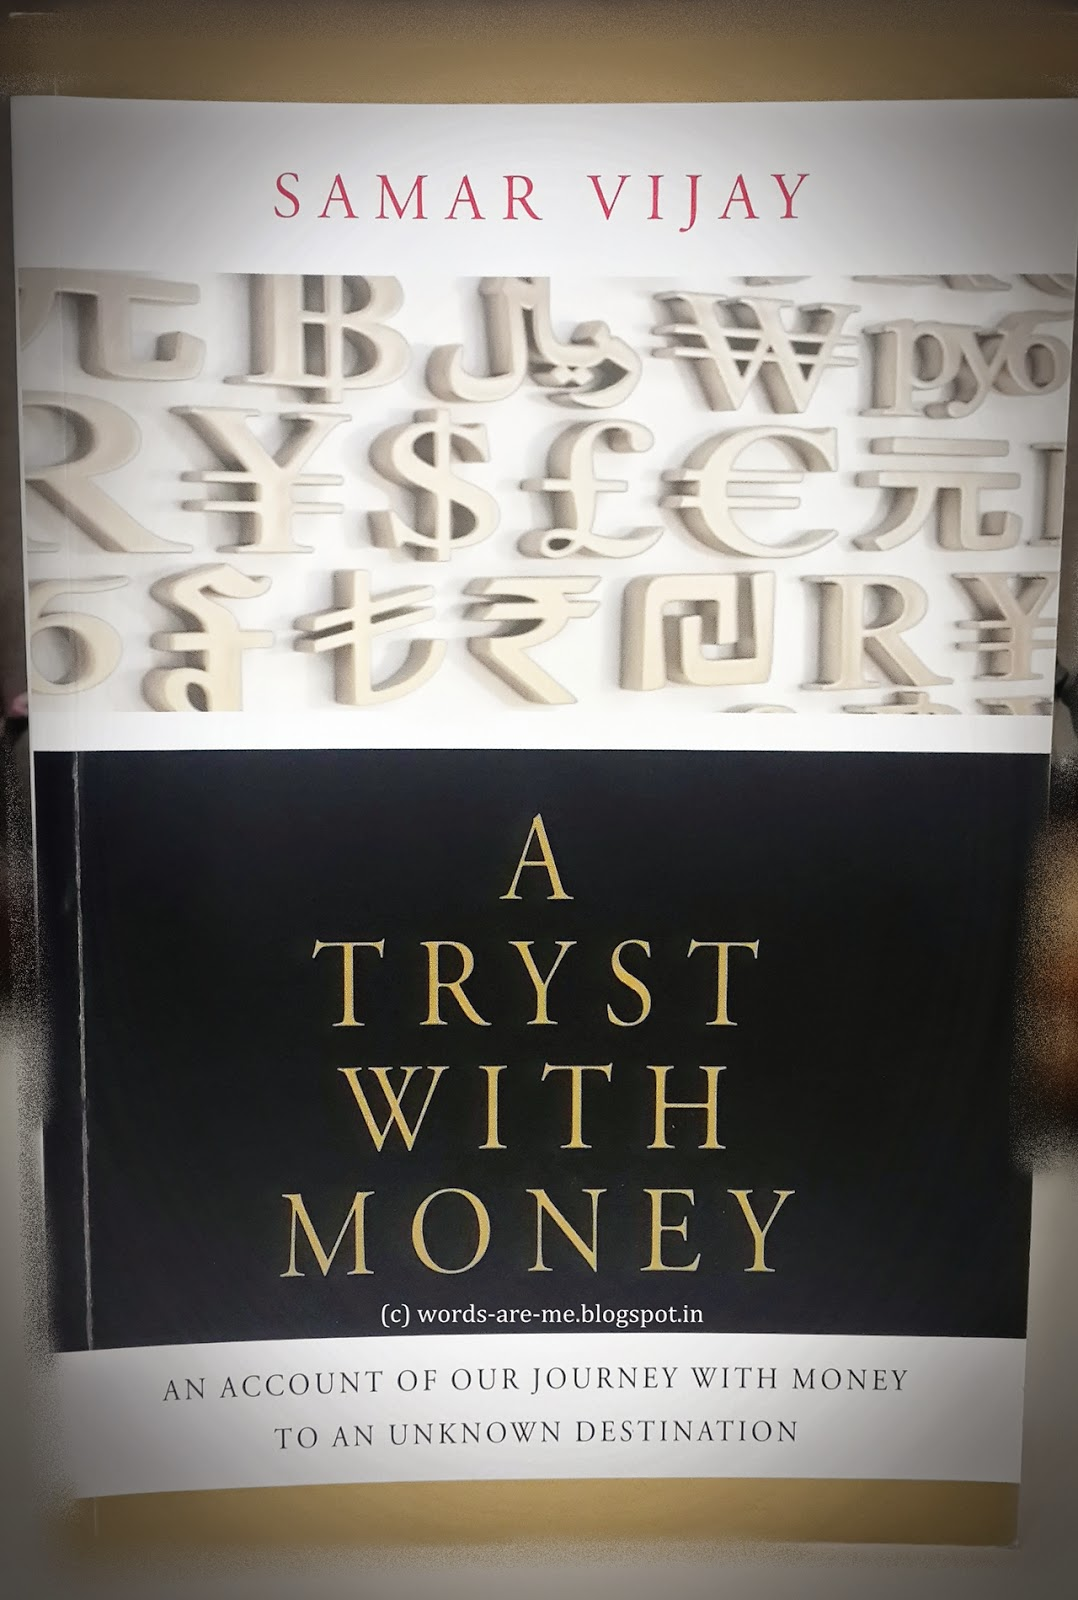 Book Review: A Tryst With Money: An account of our journey with money to an unknown destiny by Samar Vijay